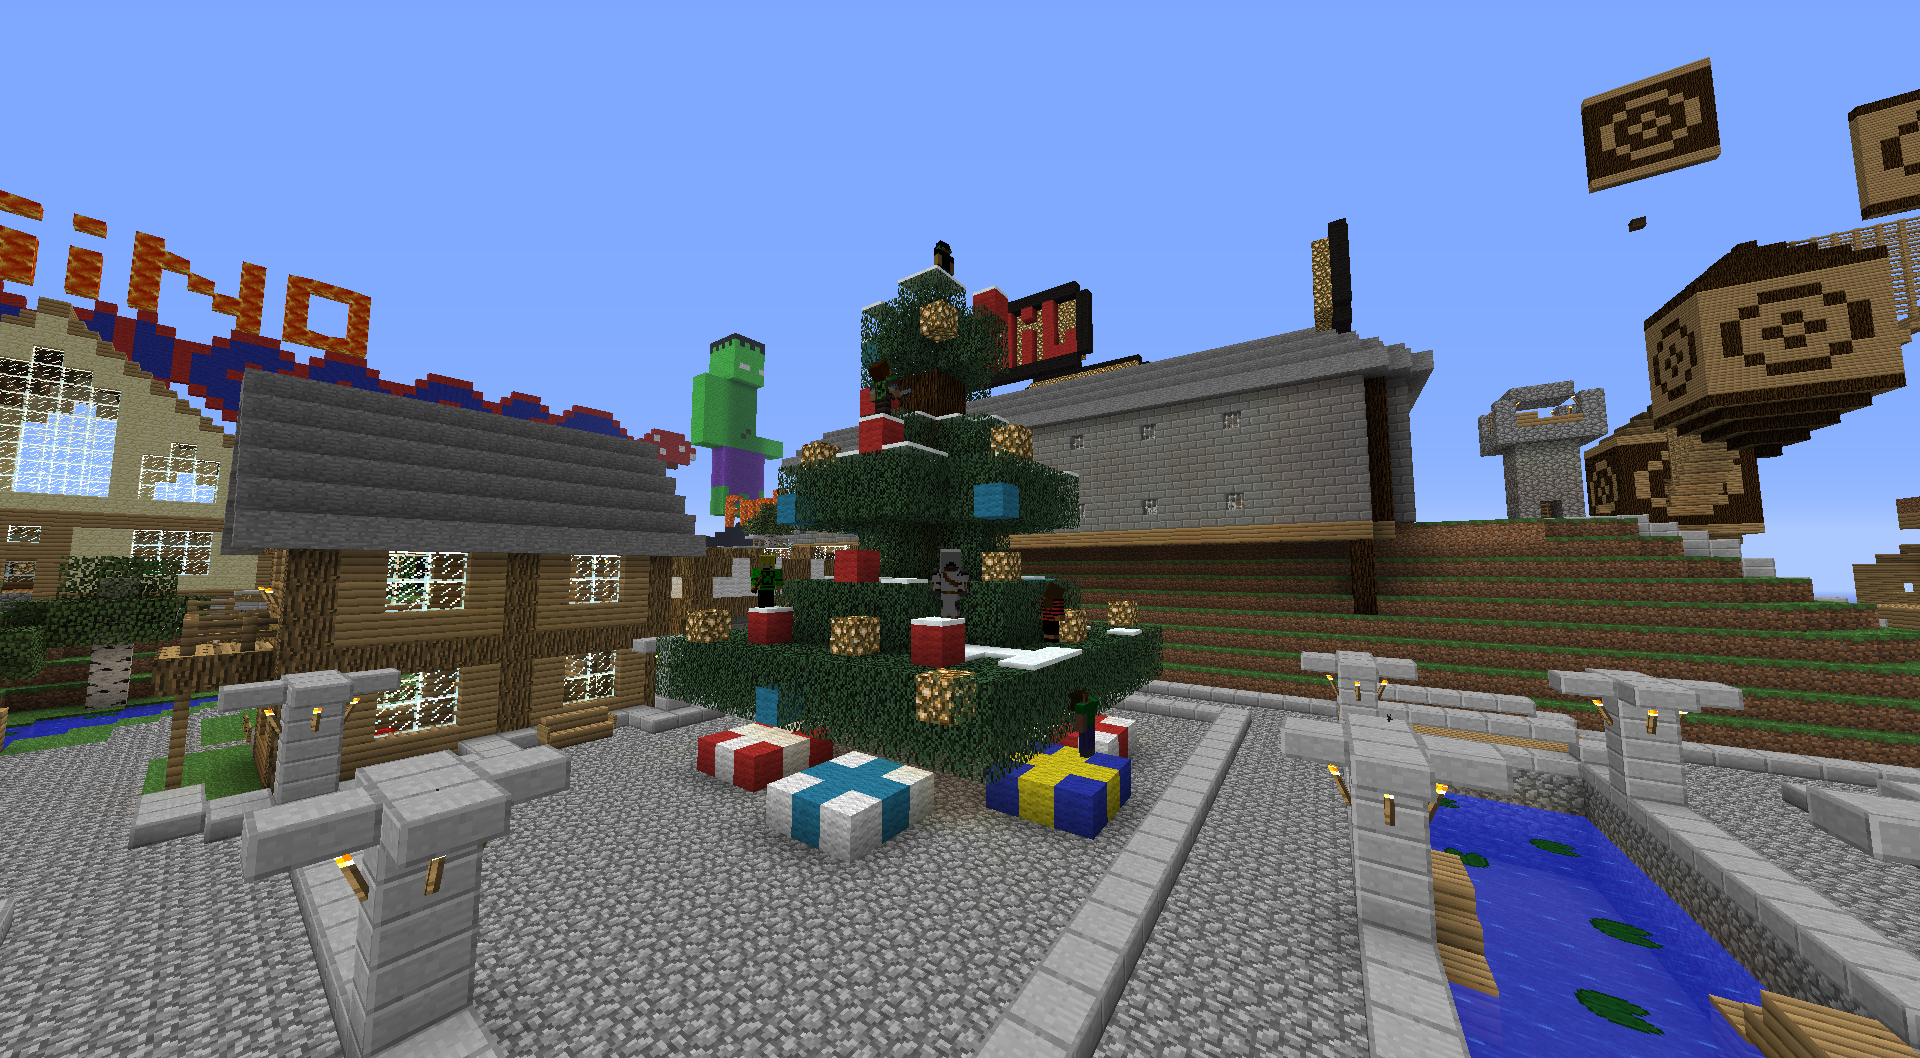 A picture of a christmas tree from the minecraft server MuCraft year 2012